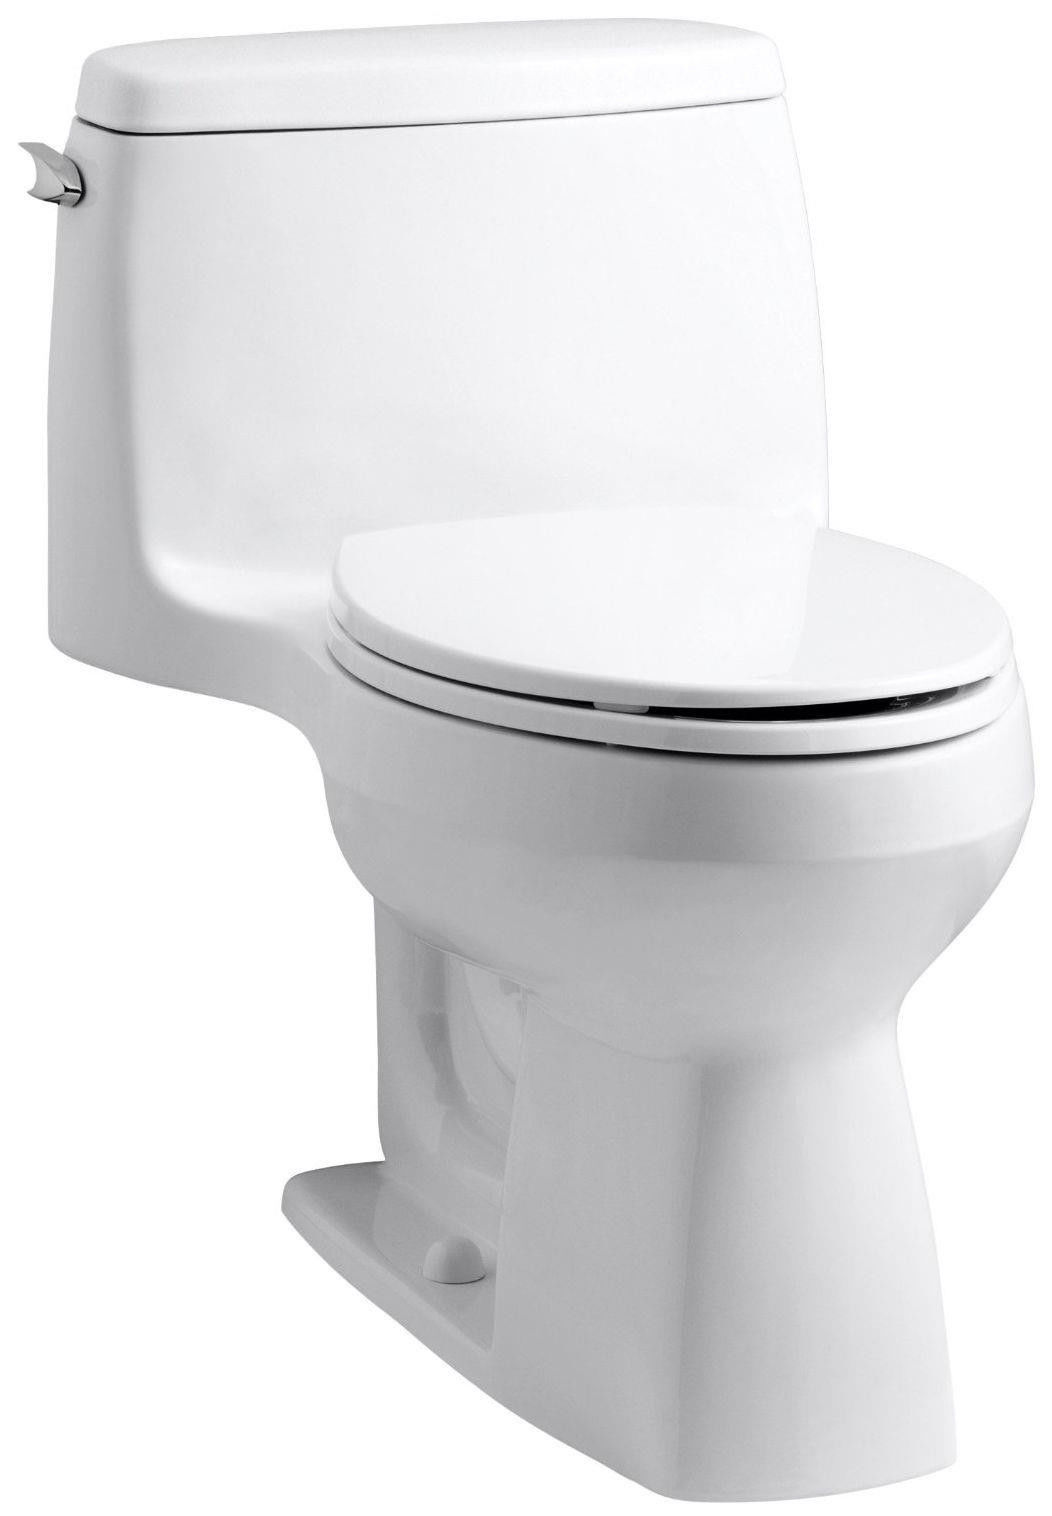 10 inch rough in toilet what are the best 10 inch in toilets ebay 29368